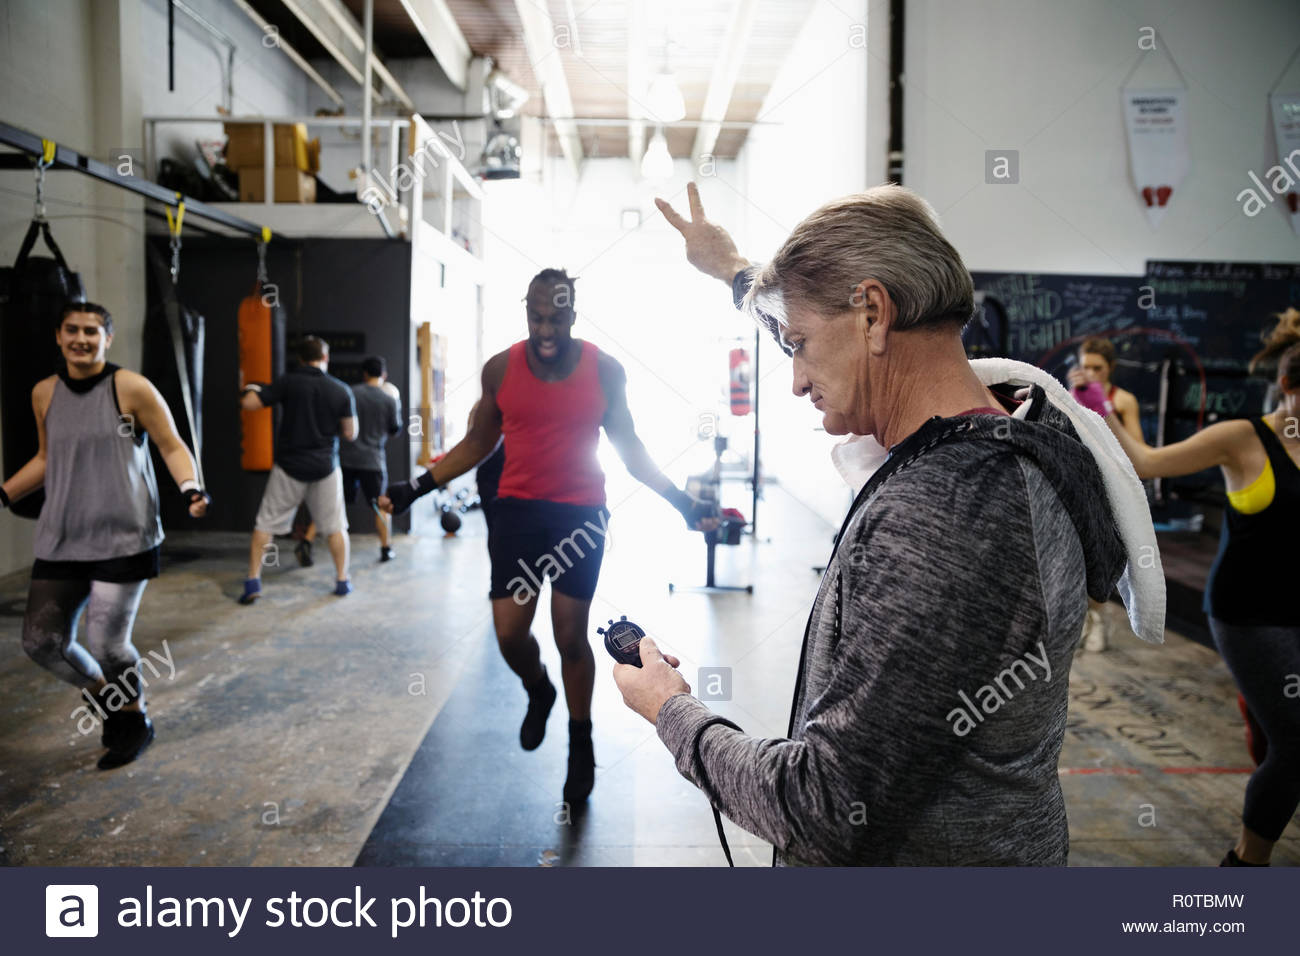 Trainer with stopwatch timing male boxers jump roping in gym - Stock Image